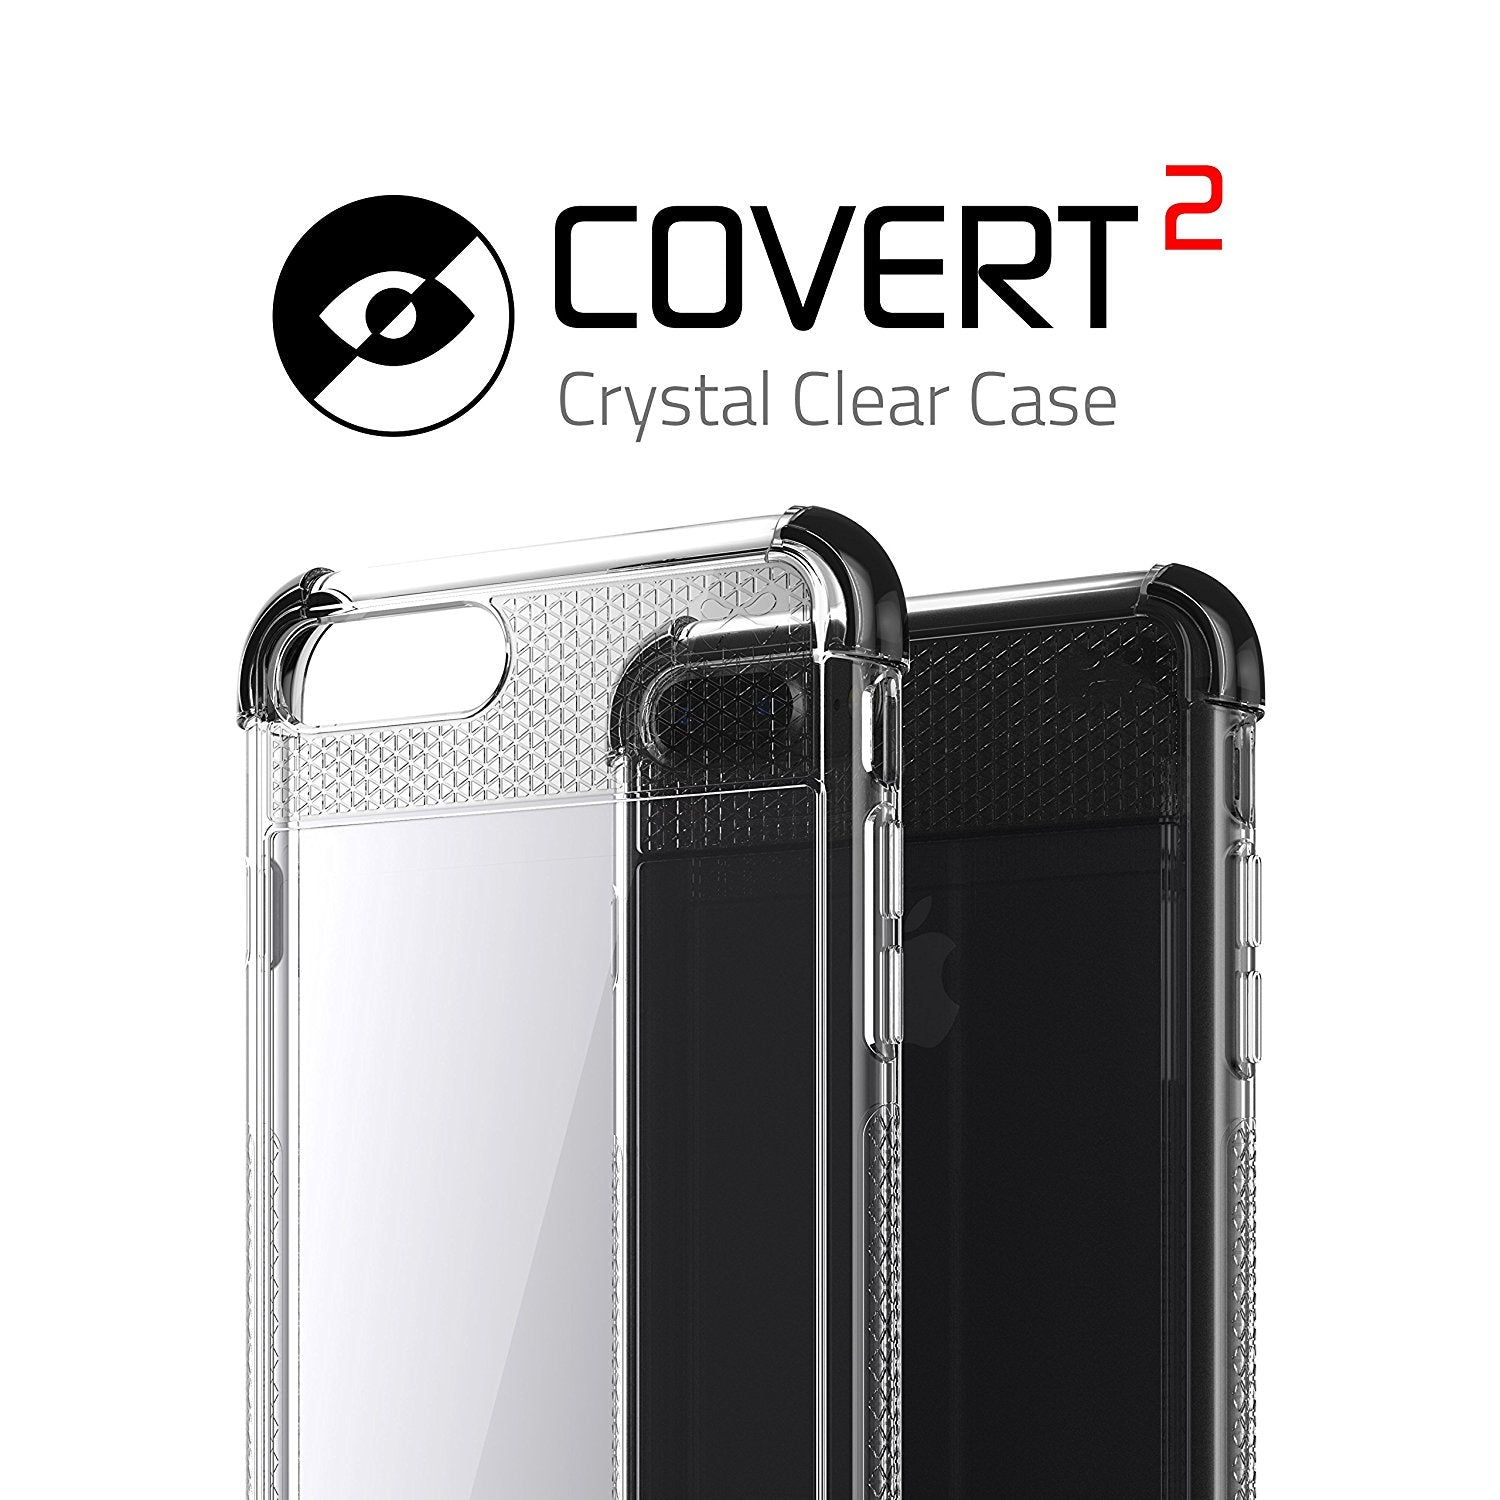 iPhone 8+ Plus Case, Ghostek Covert 2 Series for iPhone 8+ Plus Protective Case [ Black]